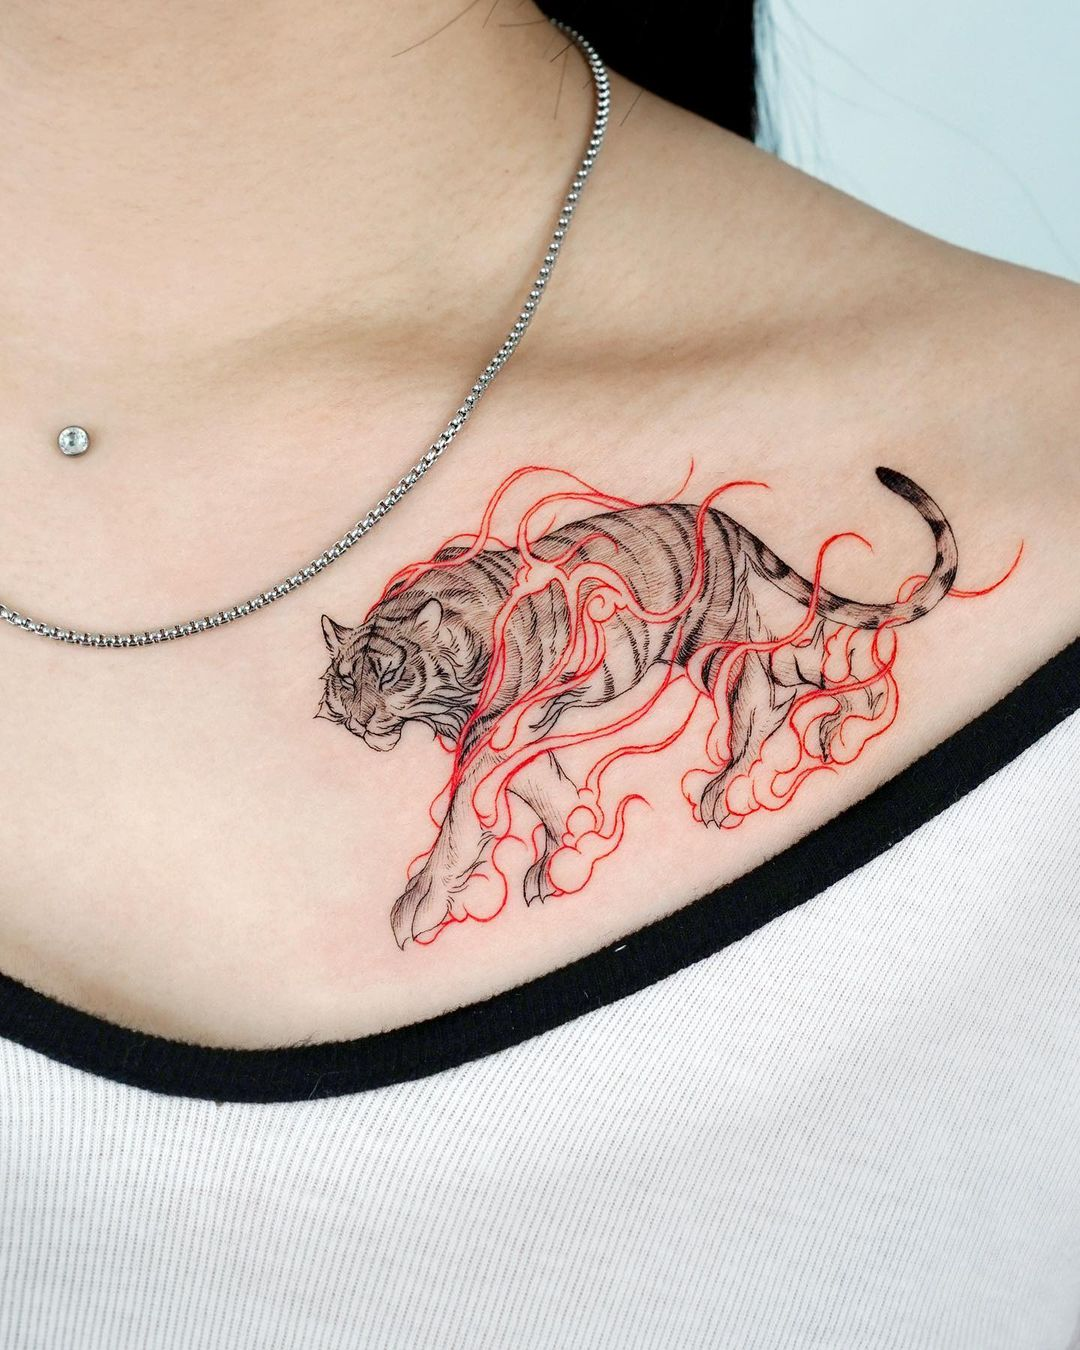 tattoo-ideas-for-women-tiger-color-realistic